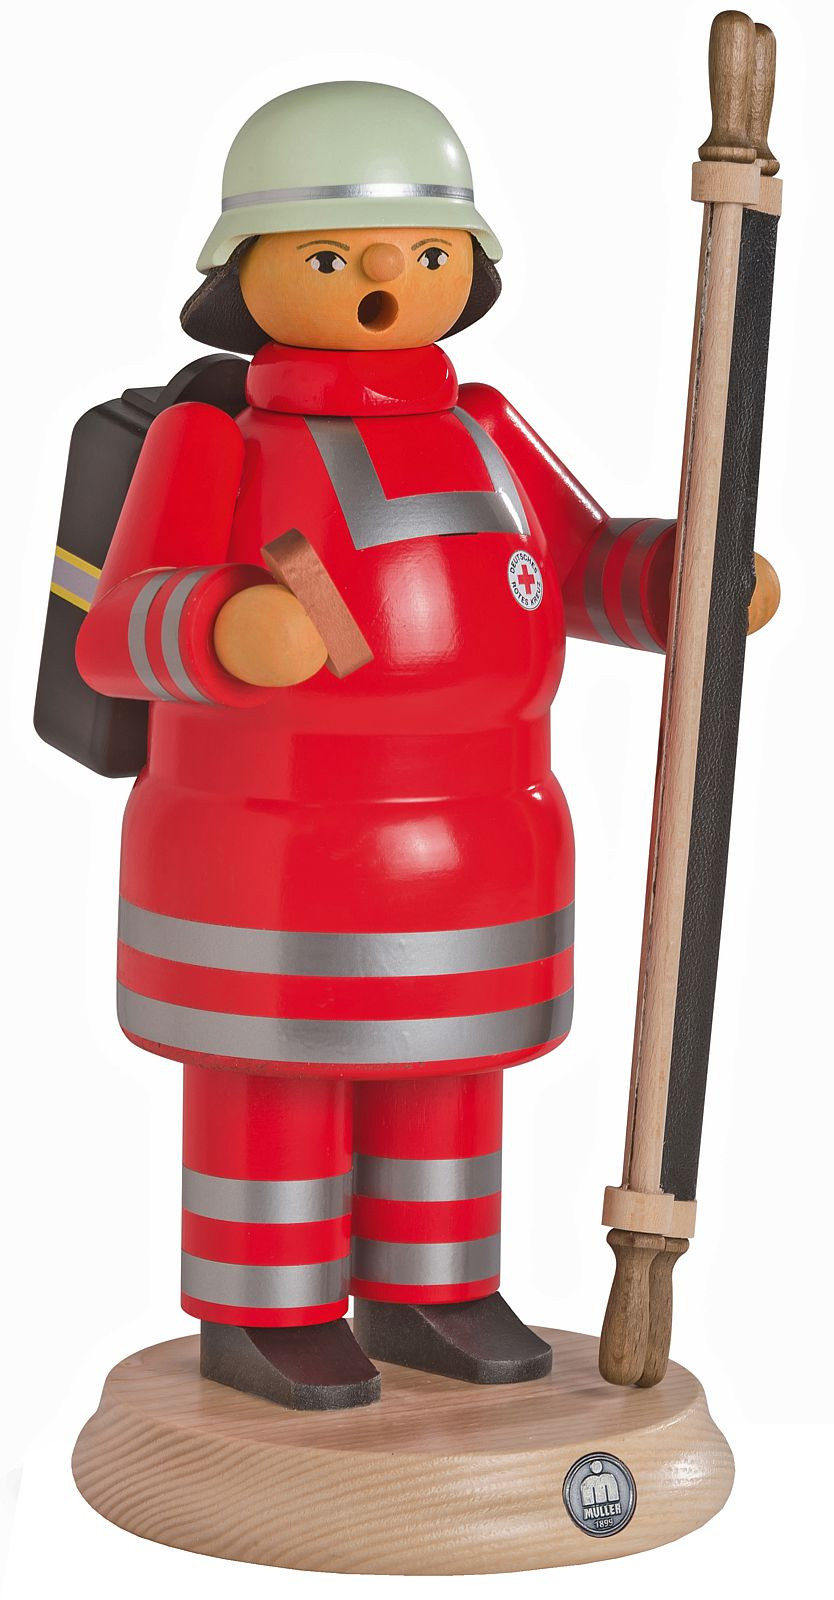 incense smoker, Red Cross ambulance man with stretcher, large